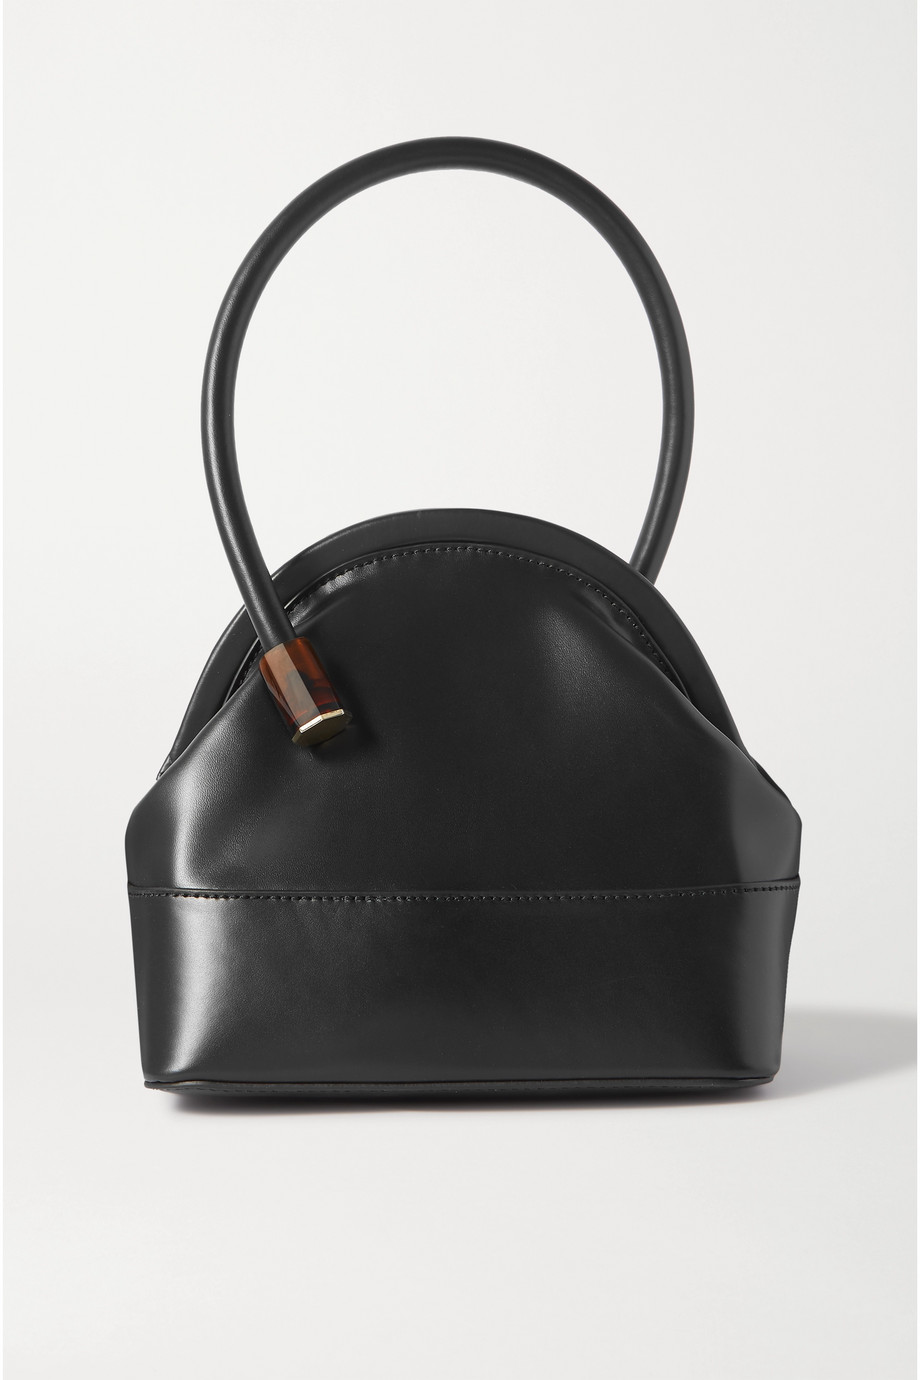 Louise Et Cie Isel leather tote